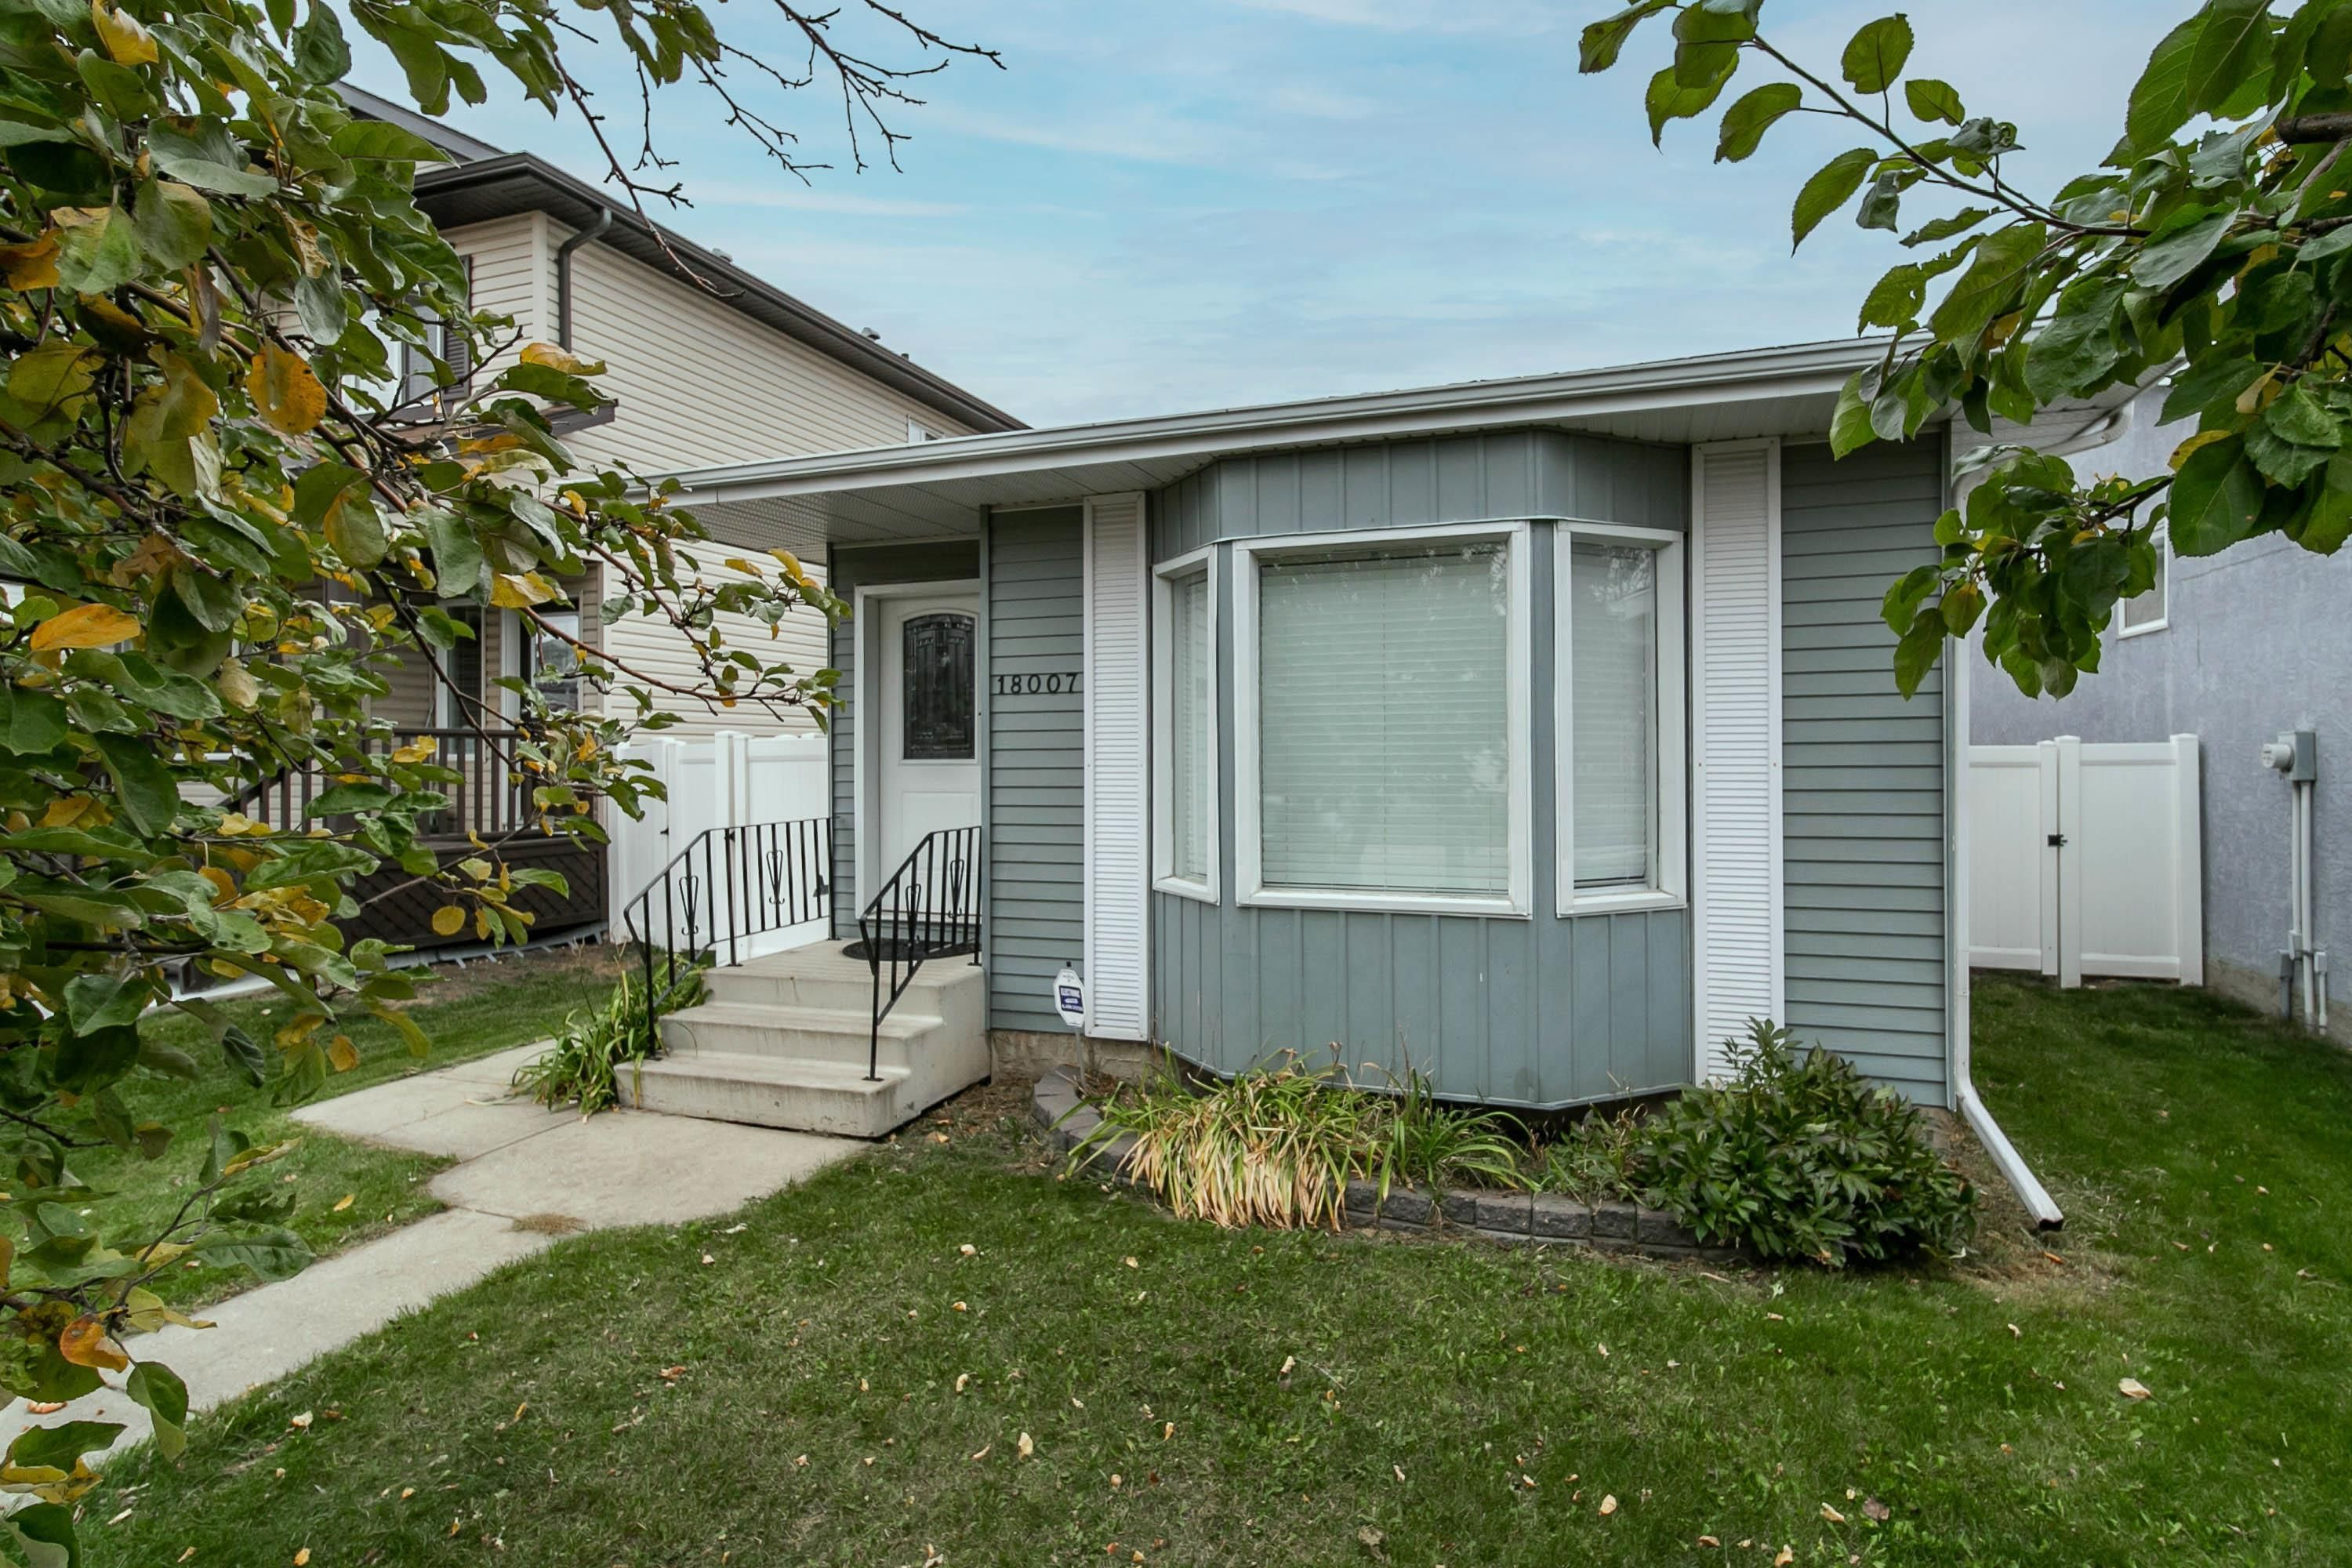 Main Photo: 18007 91A Street in Edmonton: Zone 28 House for sale : MLS®# E4265619